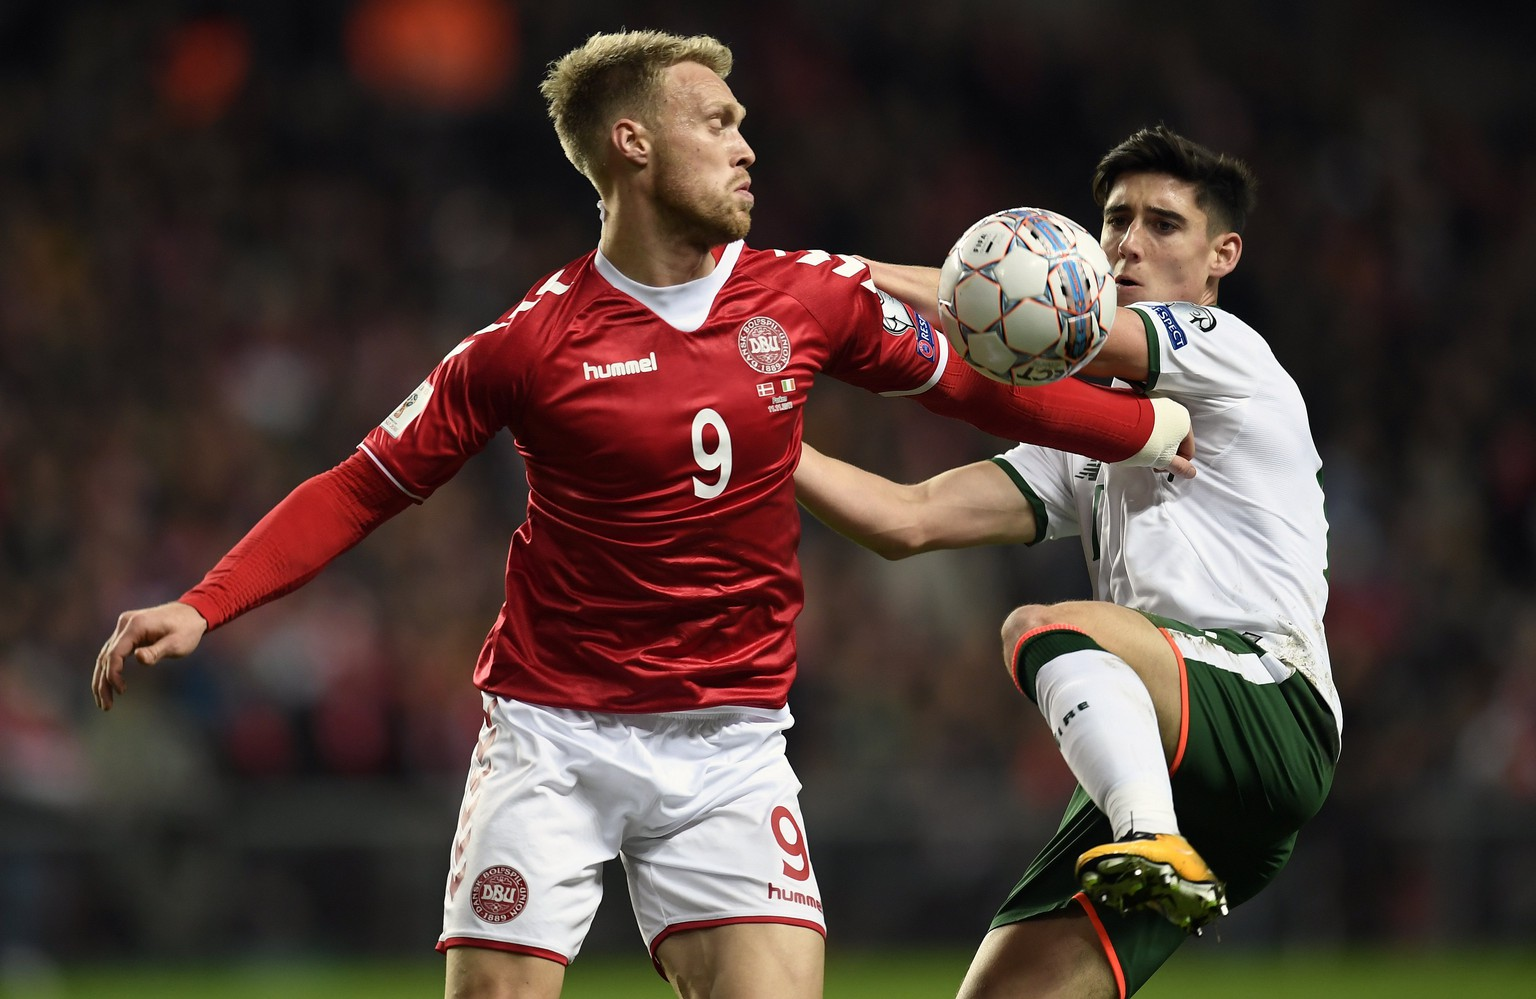 epa06323353 Nicolai Joergensen (L) of Denmarkin action  against Callum O'Dowda of Ireland during the FIFA World Cup 2018 play-off first leg soccer match between Denmark and Ireland in Copenhagen, Denmark, 11 November 2017.  EPA/LARS MOELLER  DENMARK OUT